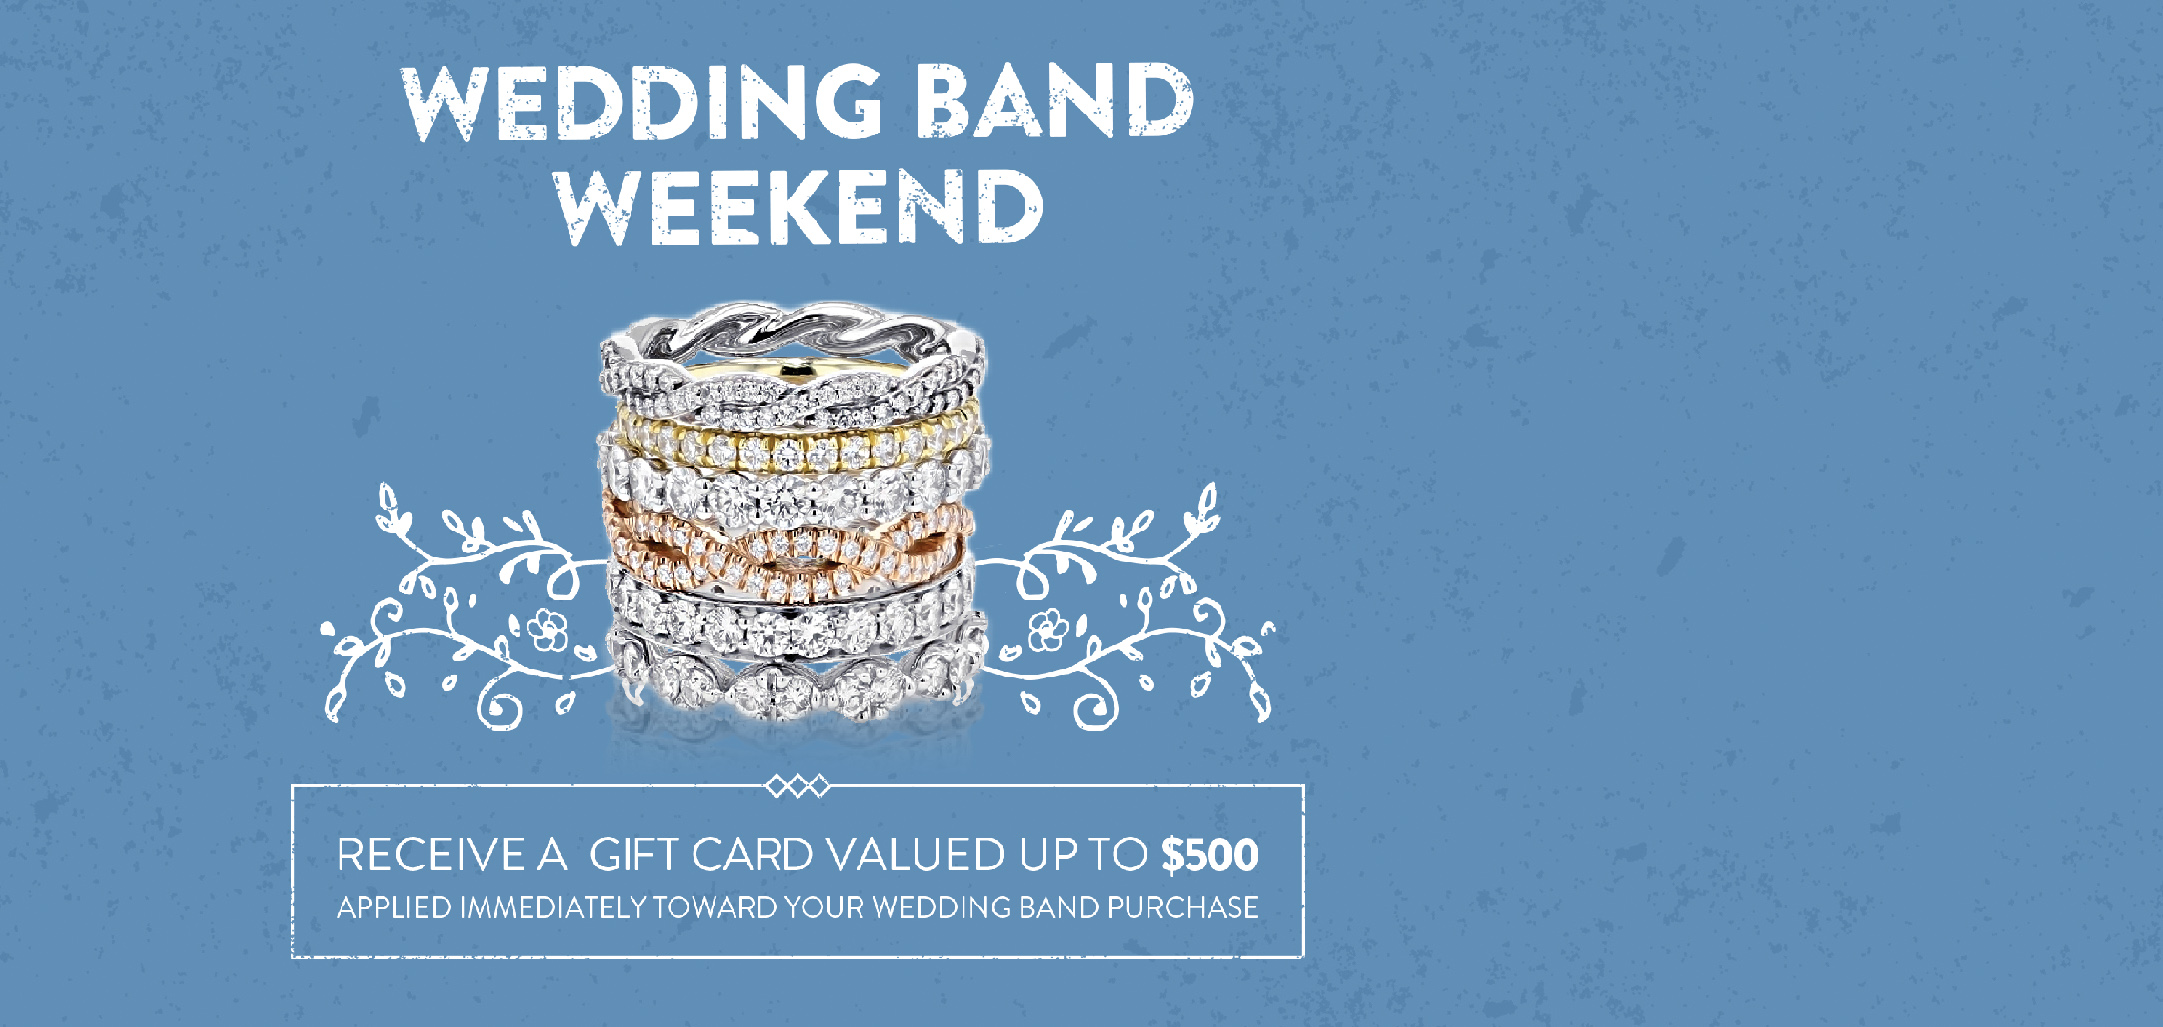 Wedding Band Weekend